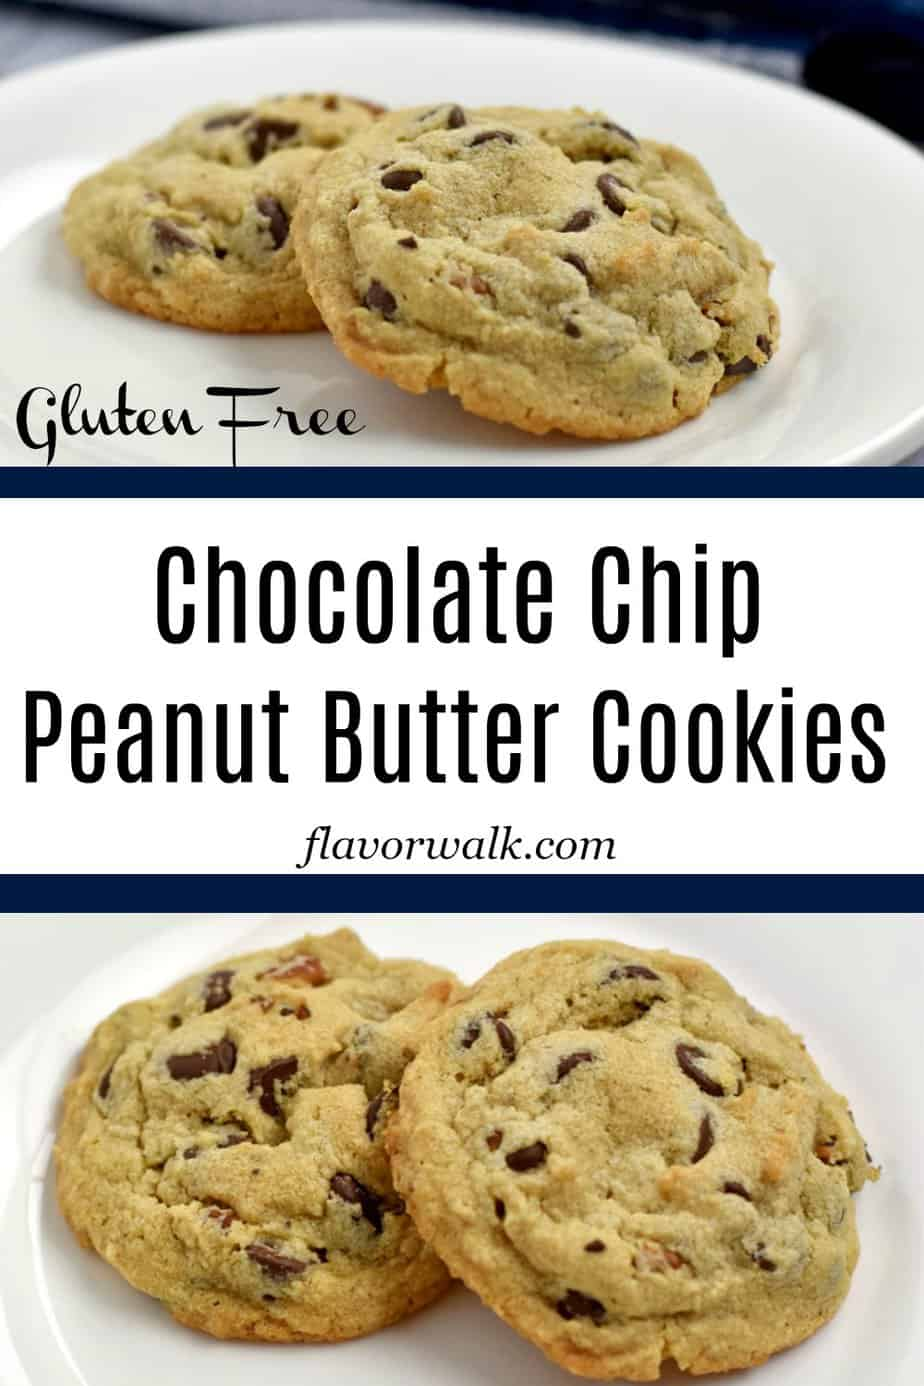 These are the best gluten free chocolate chip peanut butter cookies! They are crisp around the edges, but soft and tender in the middle. Love the combination of chocolate and peanut butter? These gluten free cookies are for you!